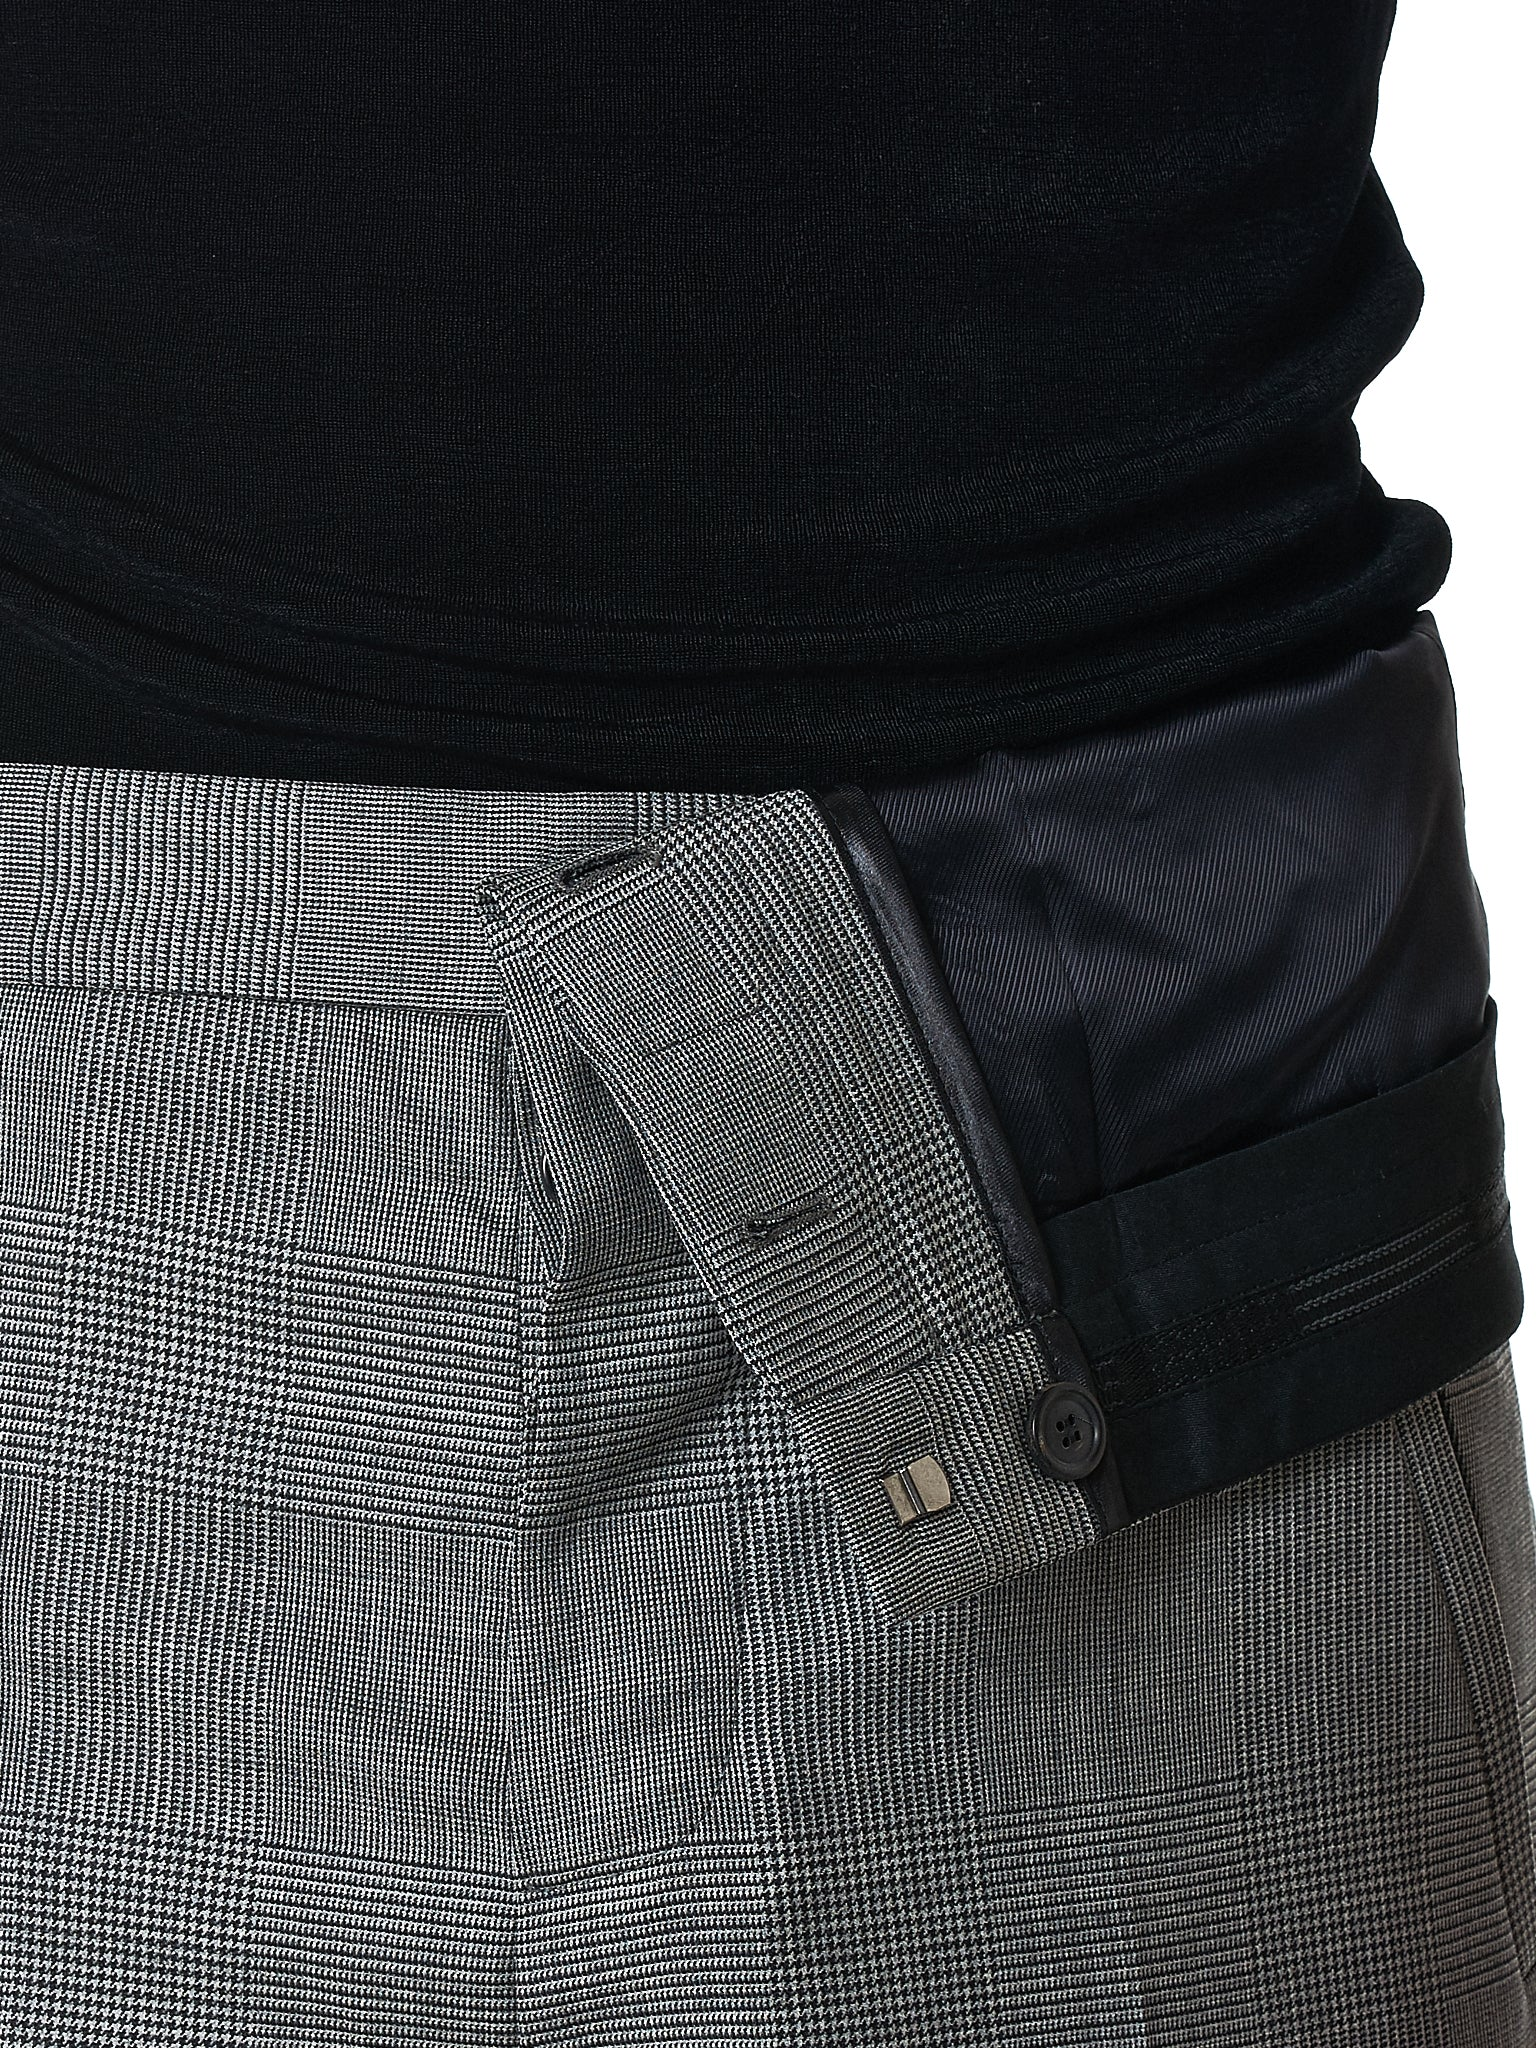 Y/Project Trouser - Hlorenzo Front Detail